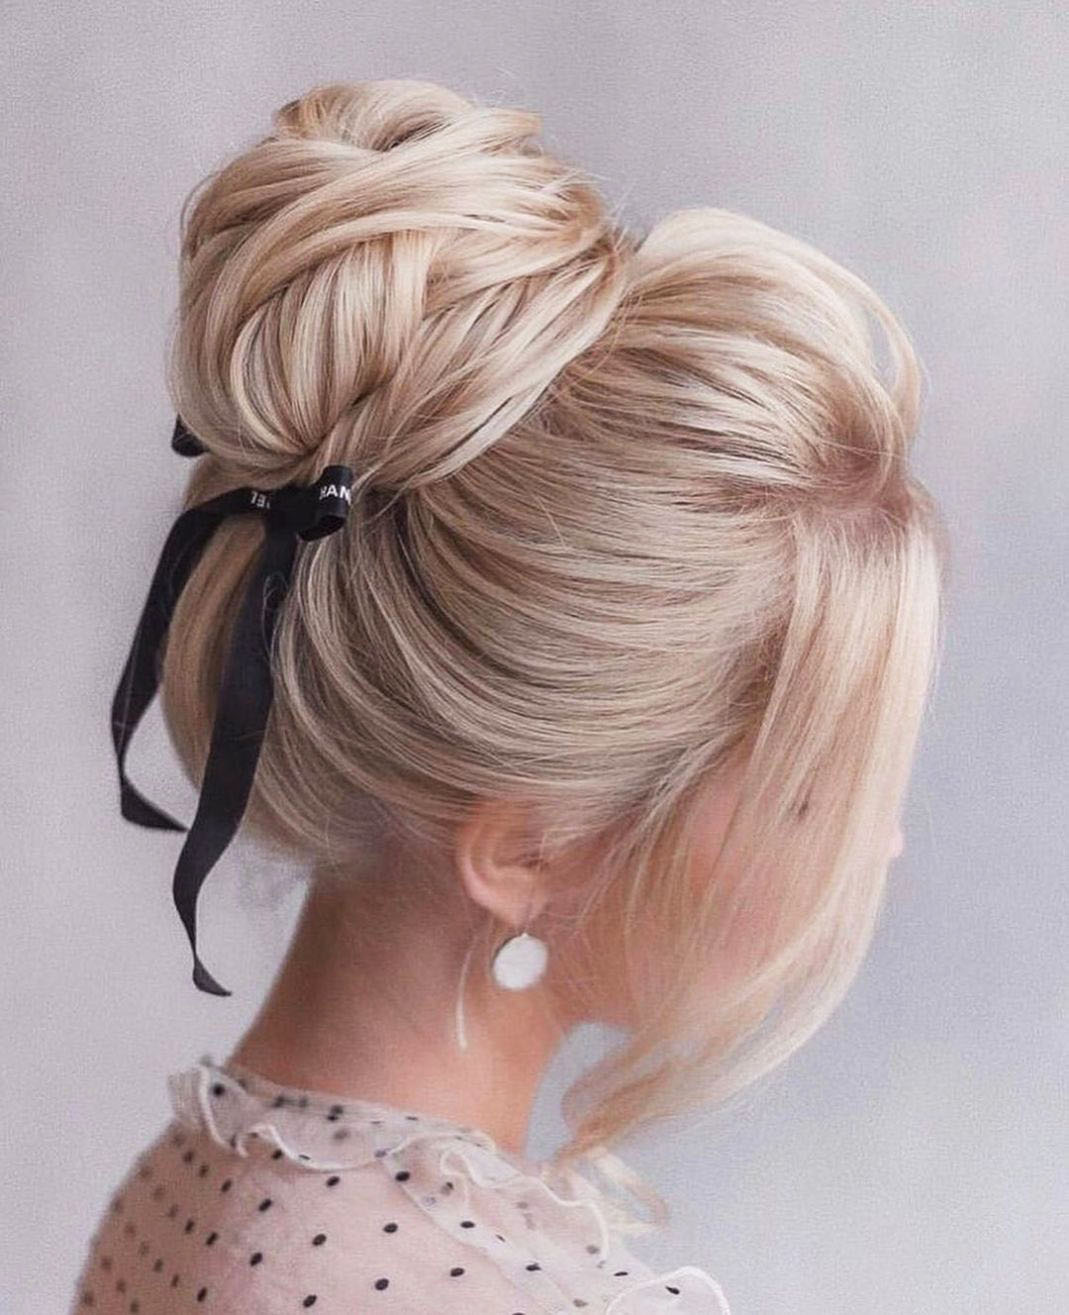 Hairstyles Winter 2020 ideas from hair stylists 18 14